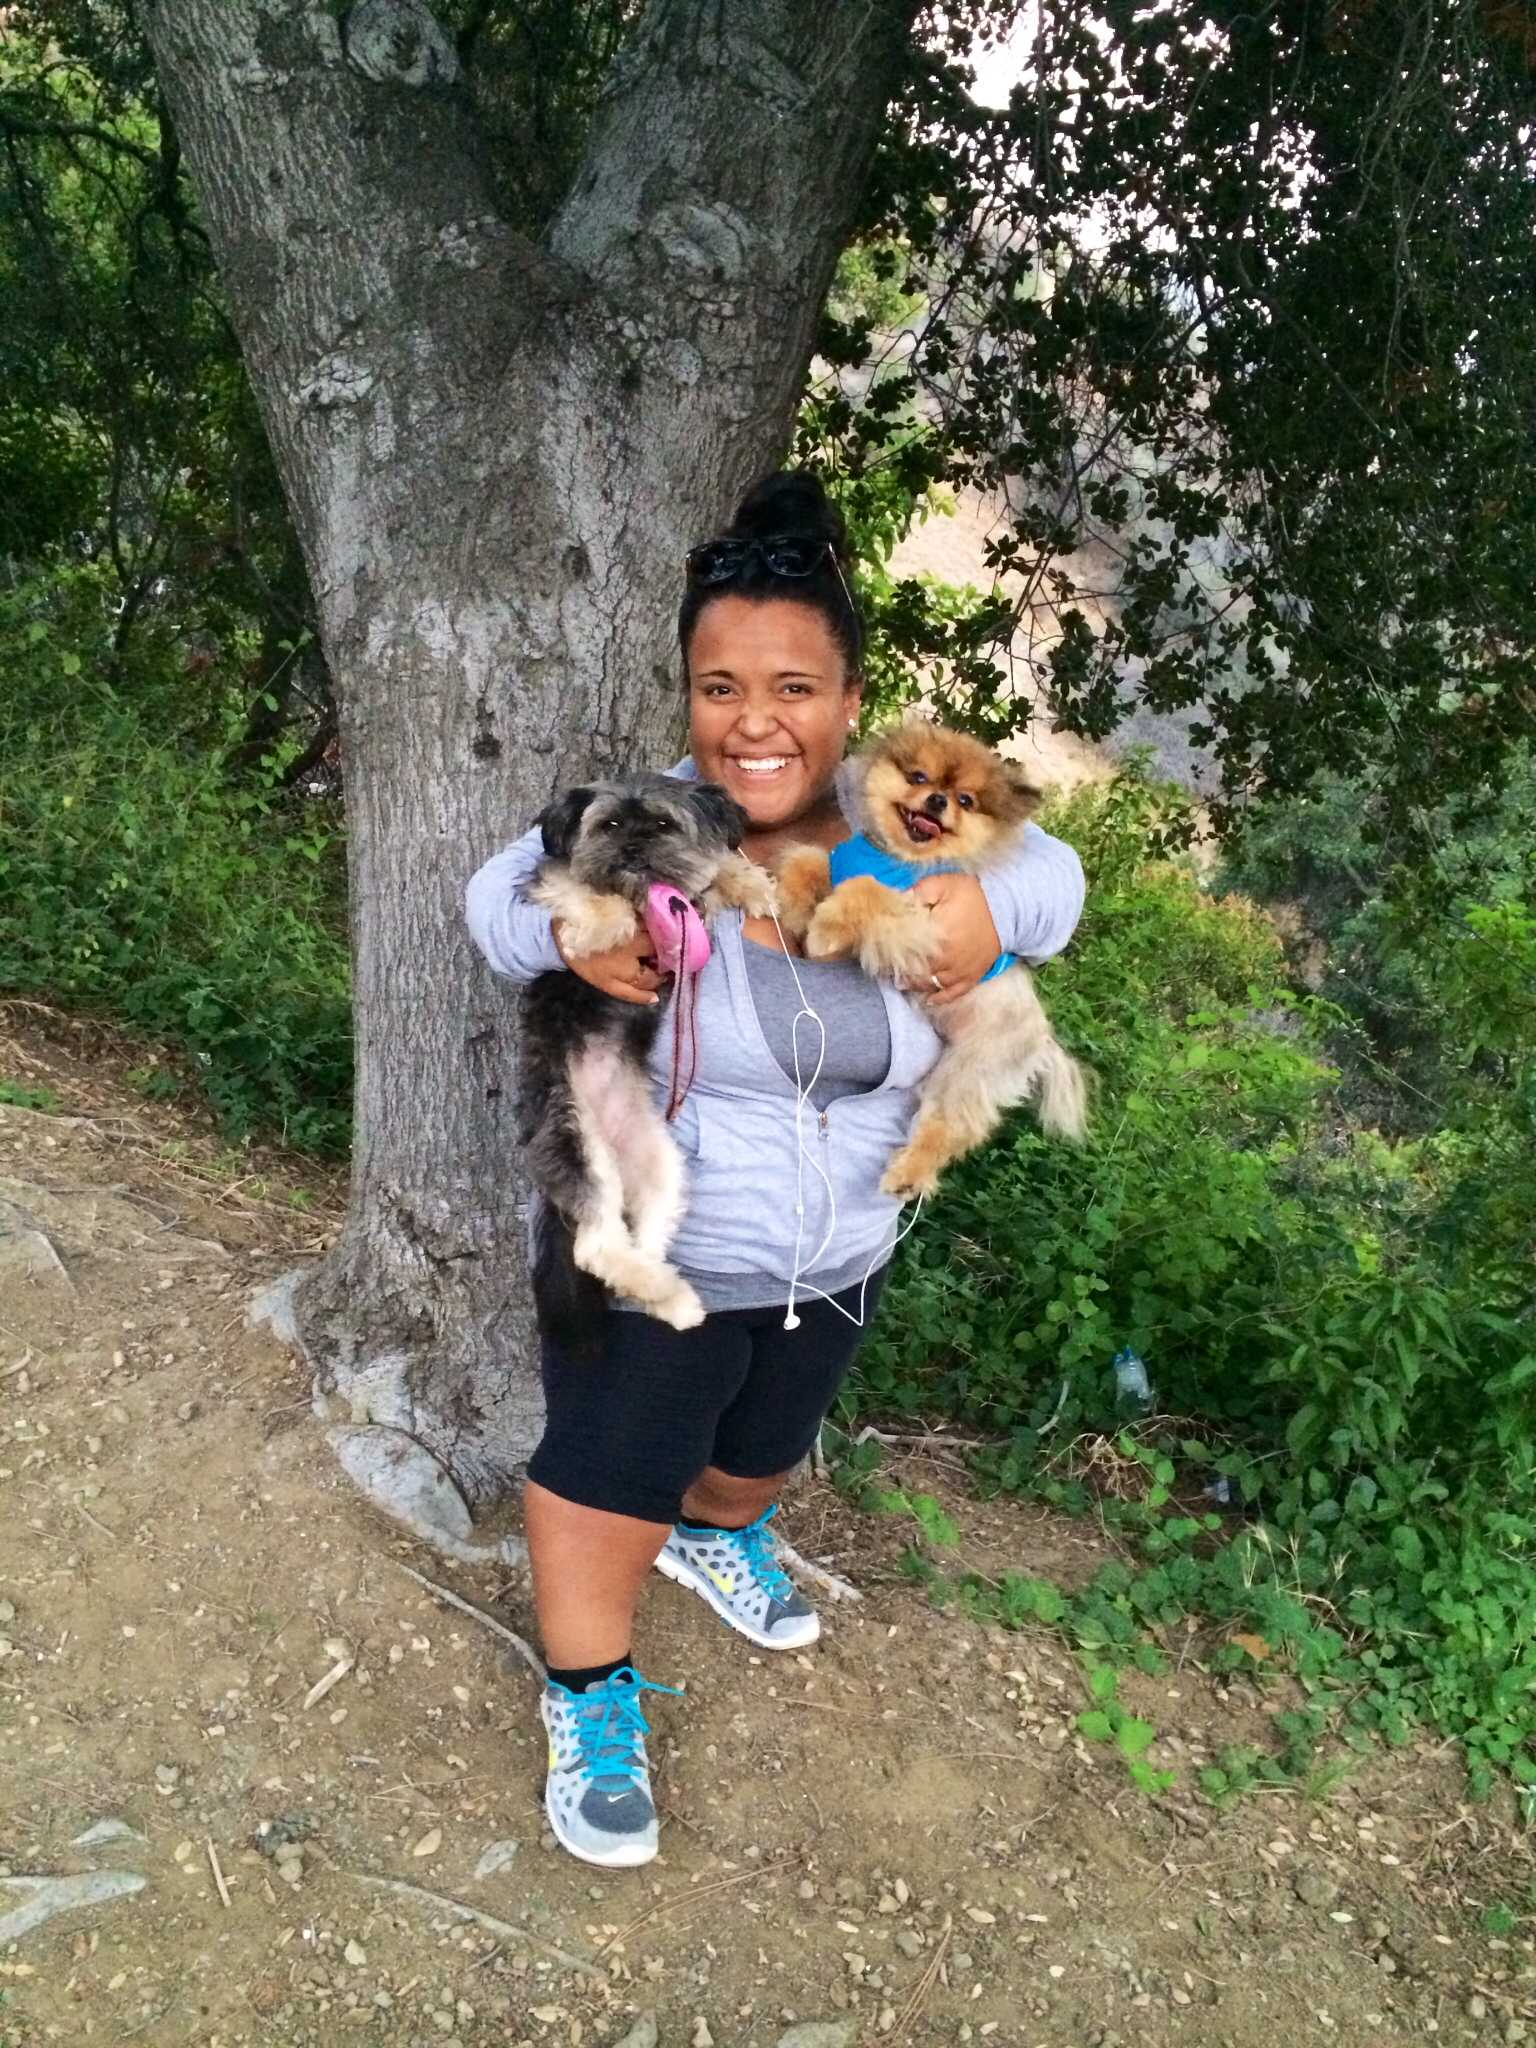 Mayela Guerrero, double-majoring in business administration and nutrition medicine, with her dogs. Photo credit: Victor Herrera Jr